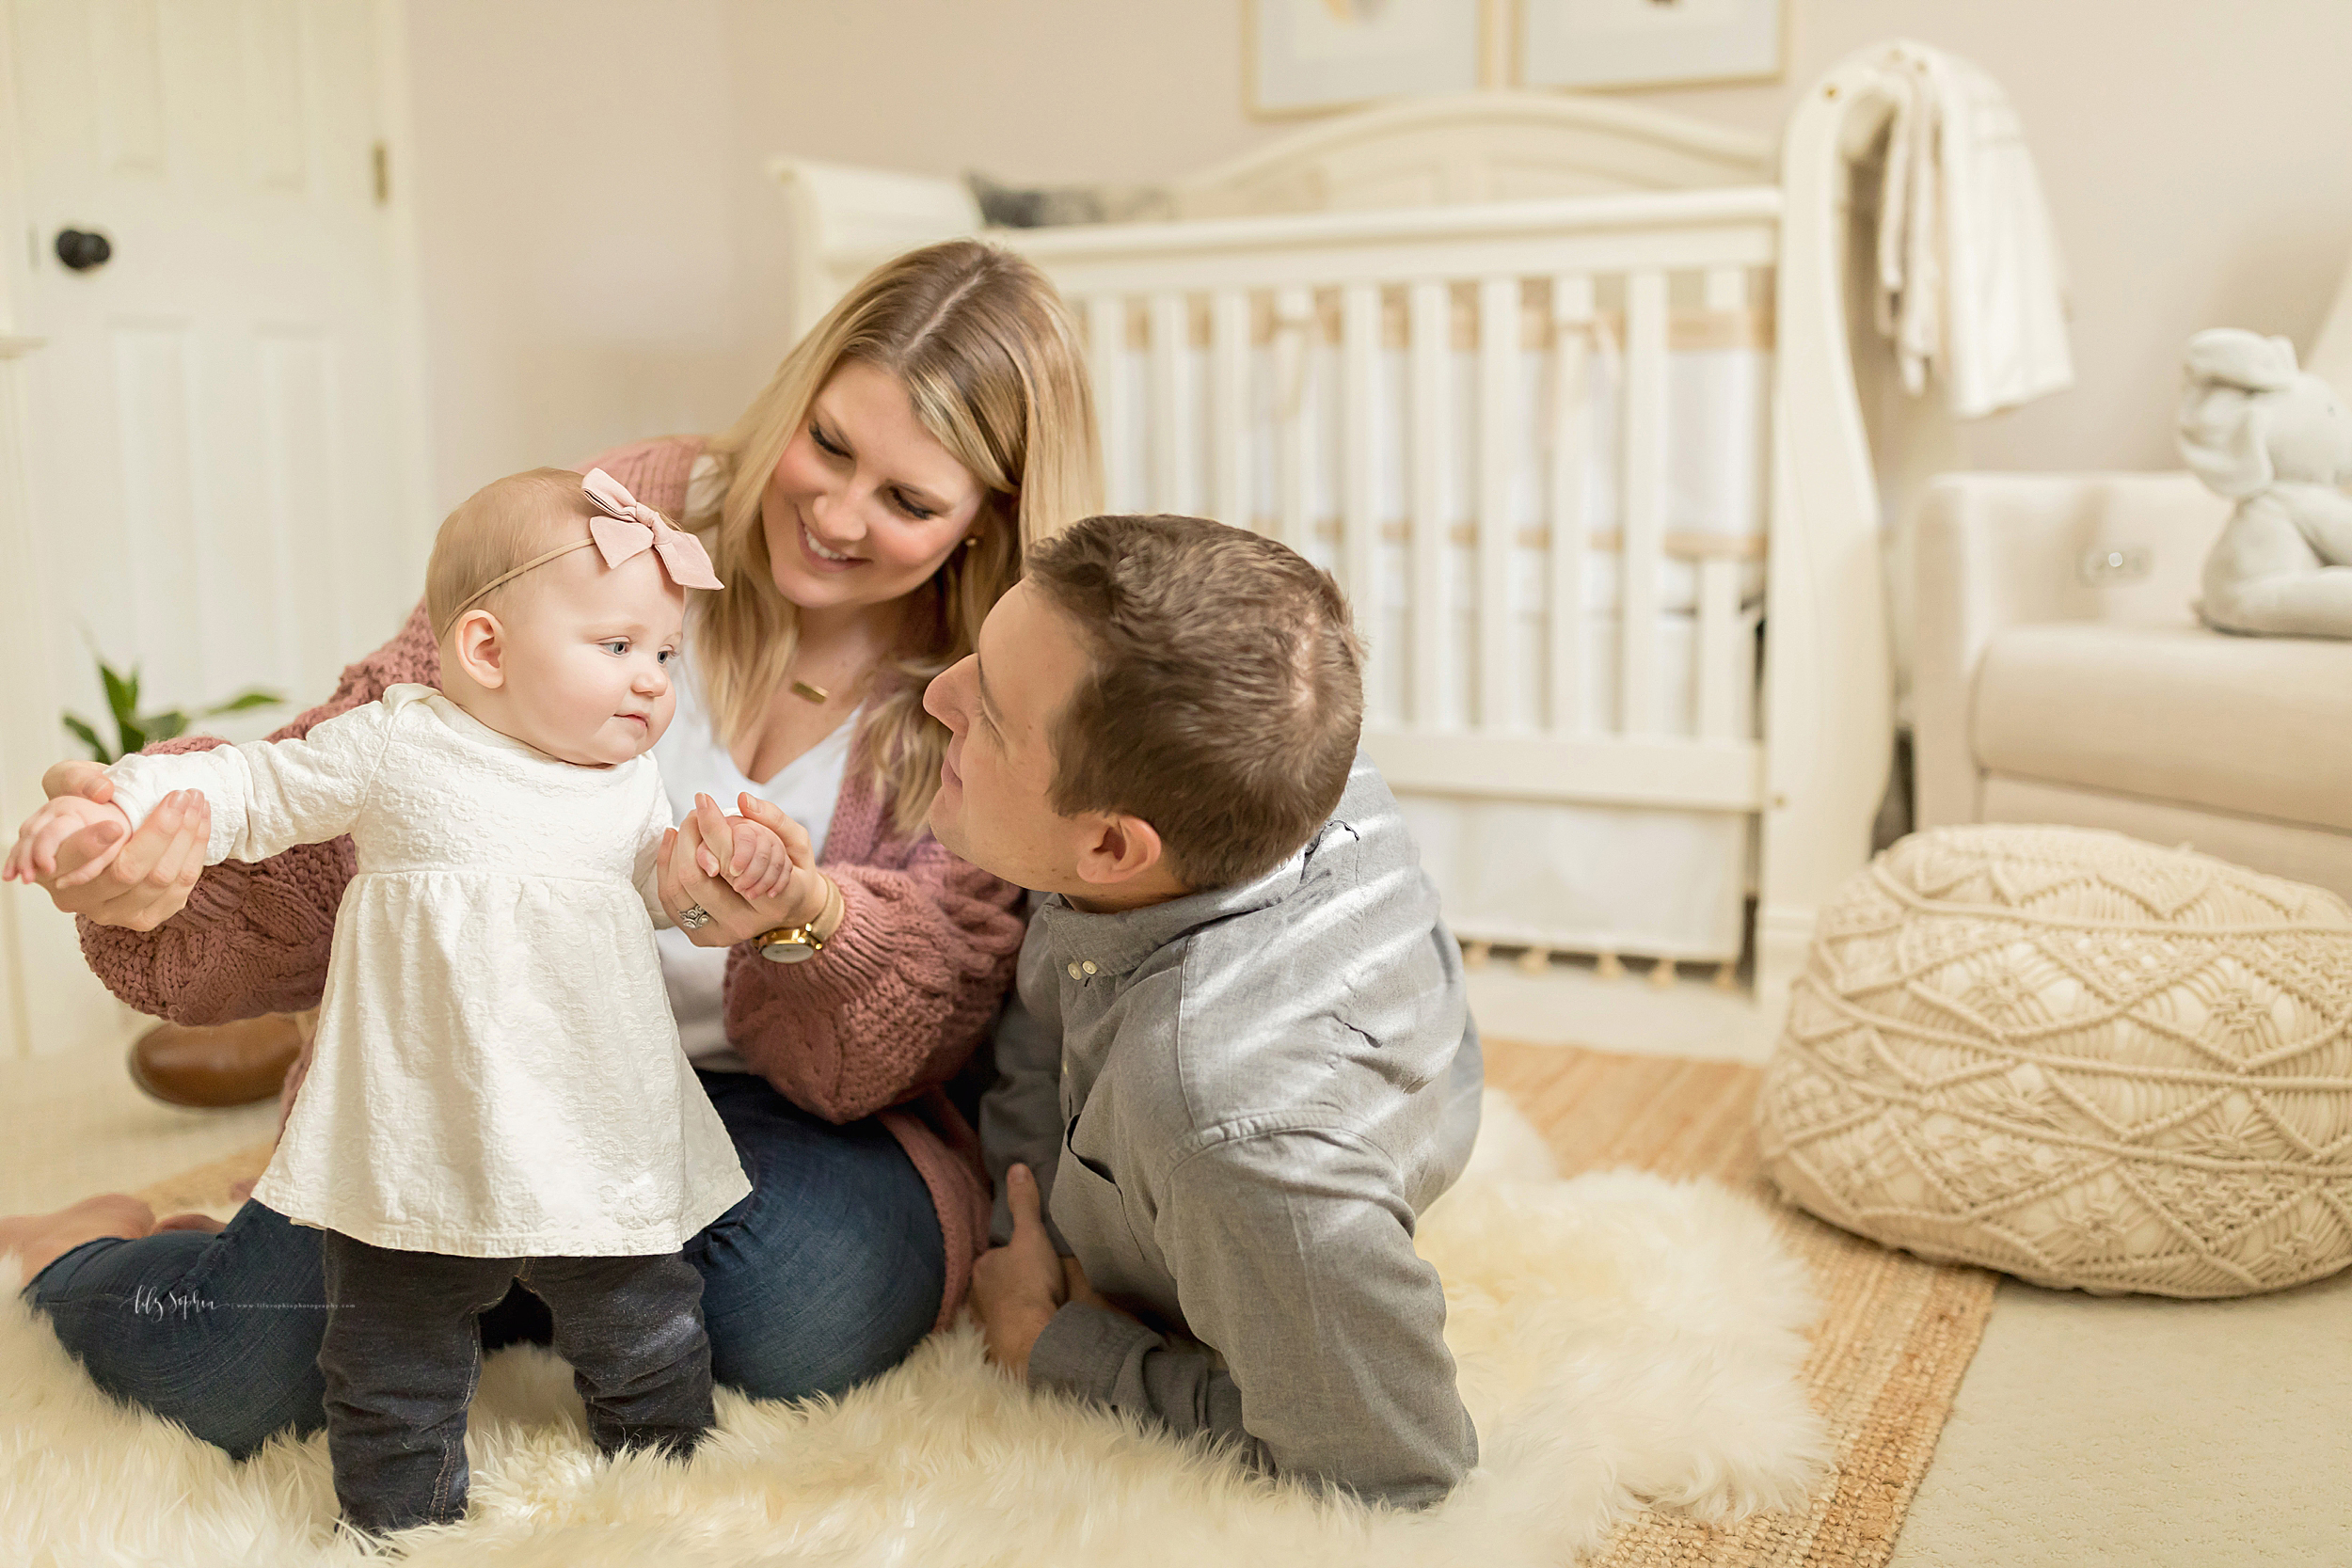 atlanta-midtown-brookhaven-ashford-dunwoody-virginia-highlands-roswell-decatur-lily-sophia-photography-in-home-six-month-milestone-family-lifestyle-session-sandy-springs_0665.jpg